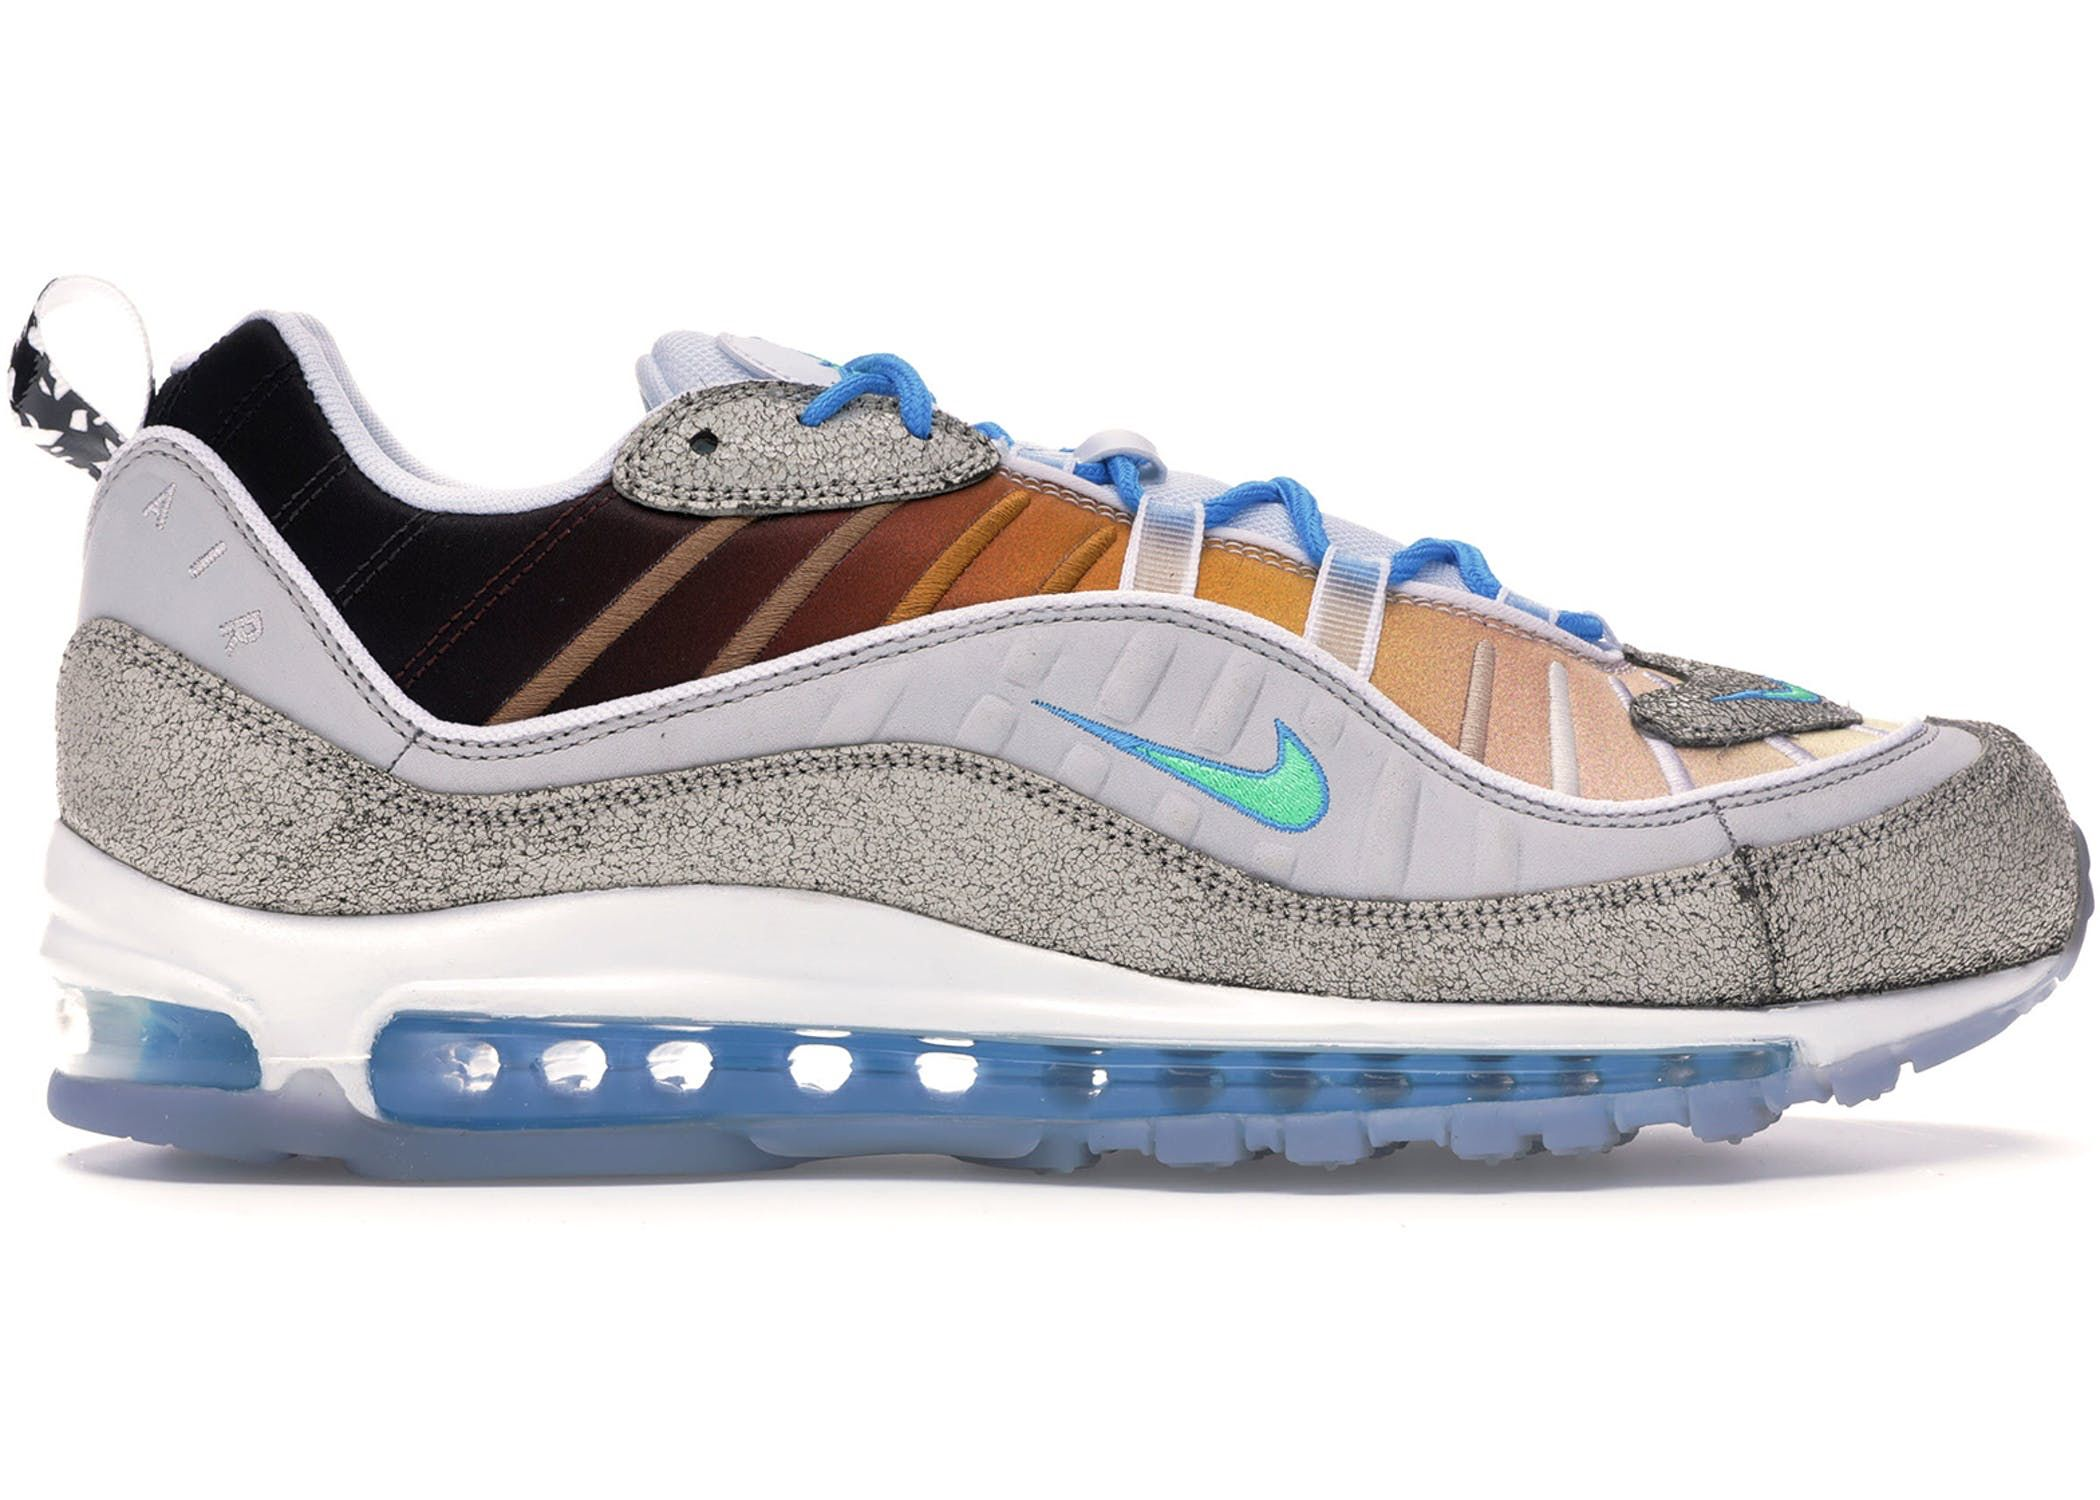 Check out the Air Max 98 La Mezcla available on StockX